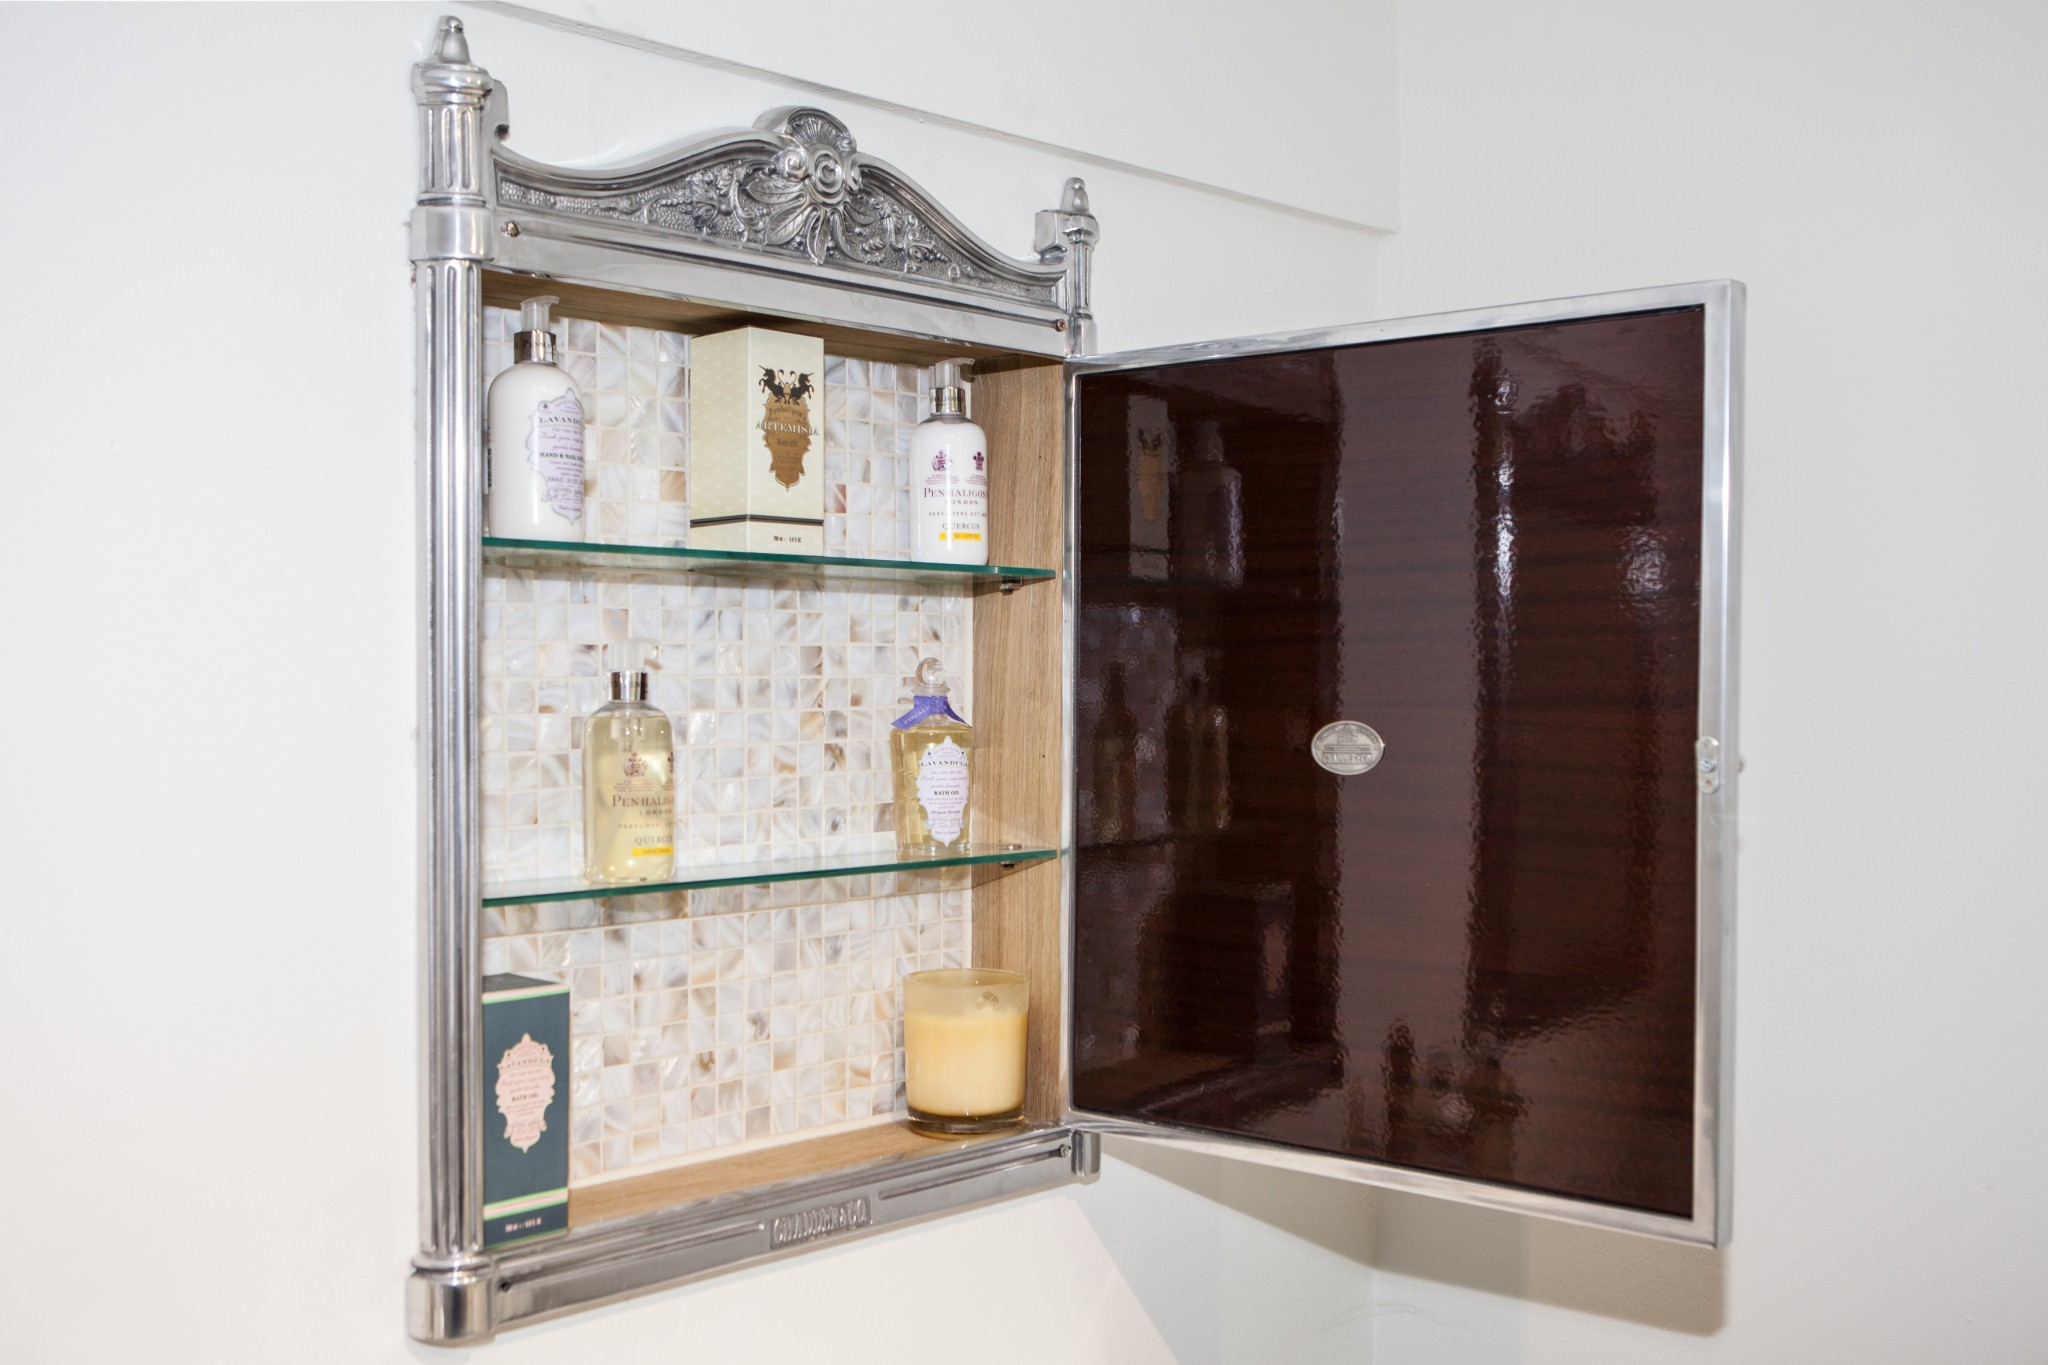 Mirrored Bathroom Cupboard Blenheim In Wall Cabinet Chadder And Co